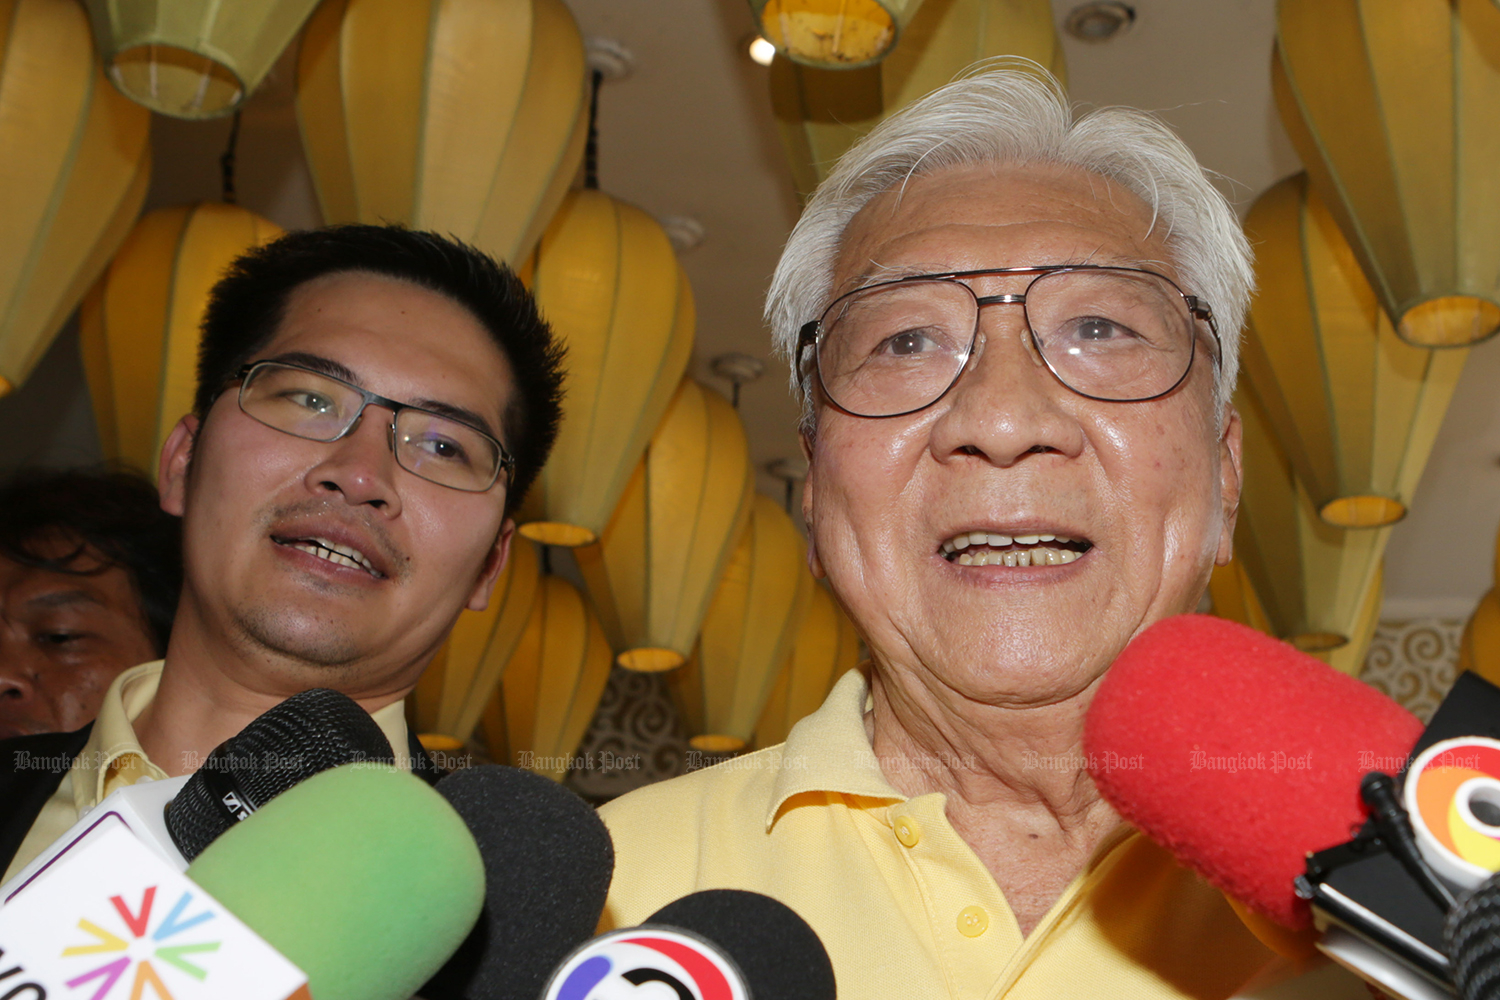 Thai Civilised Party leader Mongkolkit Suksintharanont (left) and Prachatham Thai Party leader Pichet Sathirachawal talk to the media after the meeting of 10 small parties collapsed on Monday. (Photo by Apichit Jinakul)